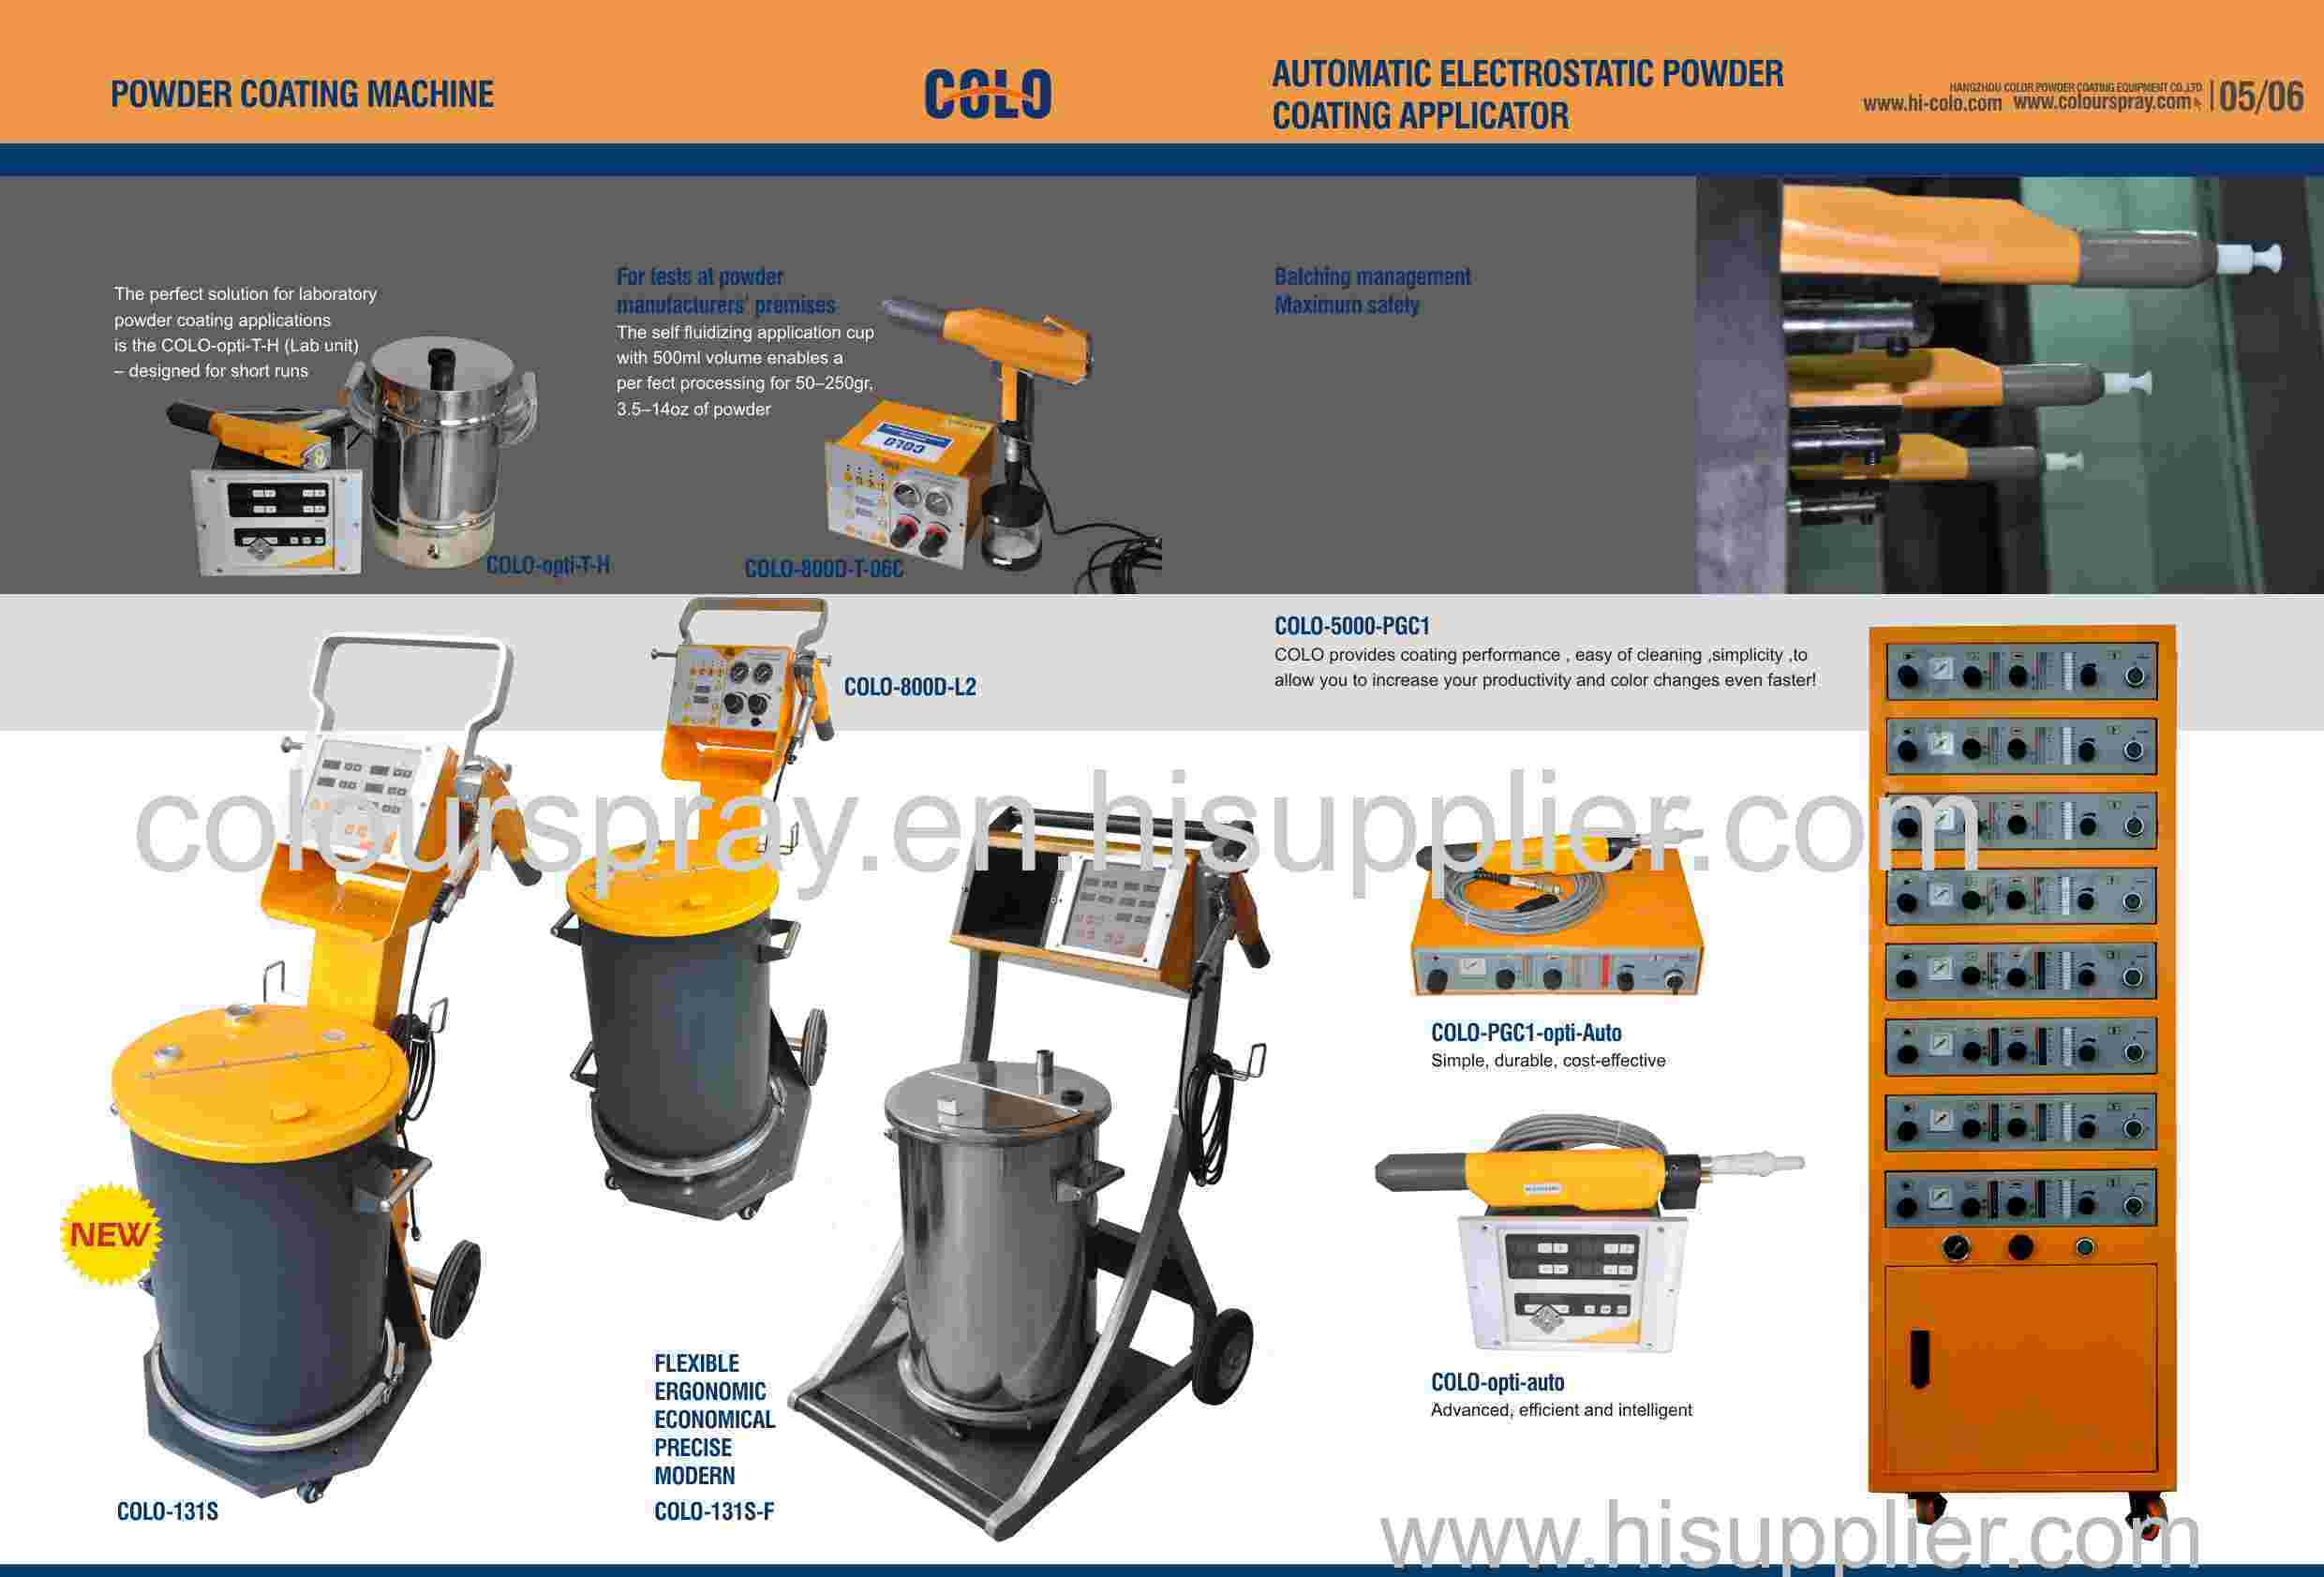 powder coating equipment catalogue